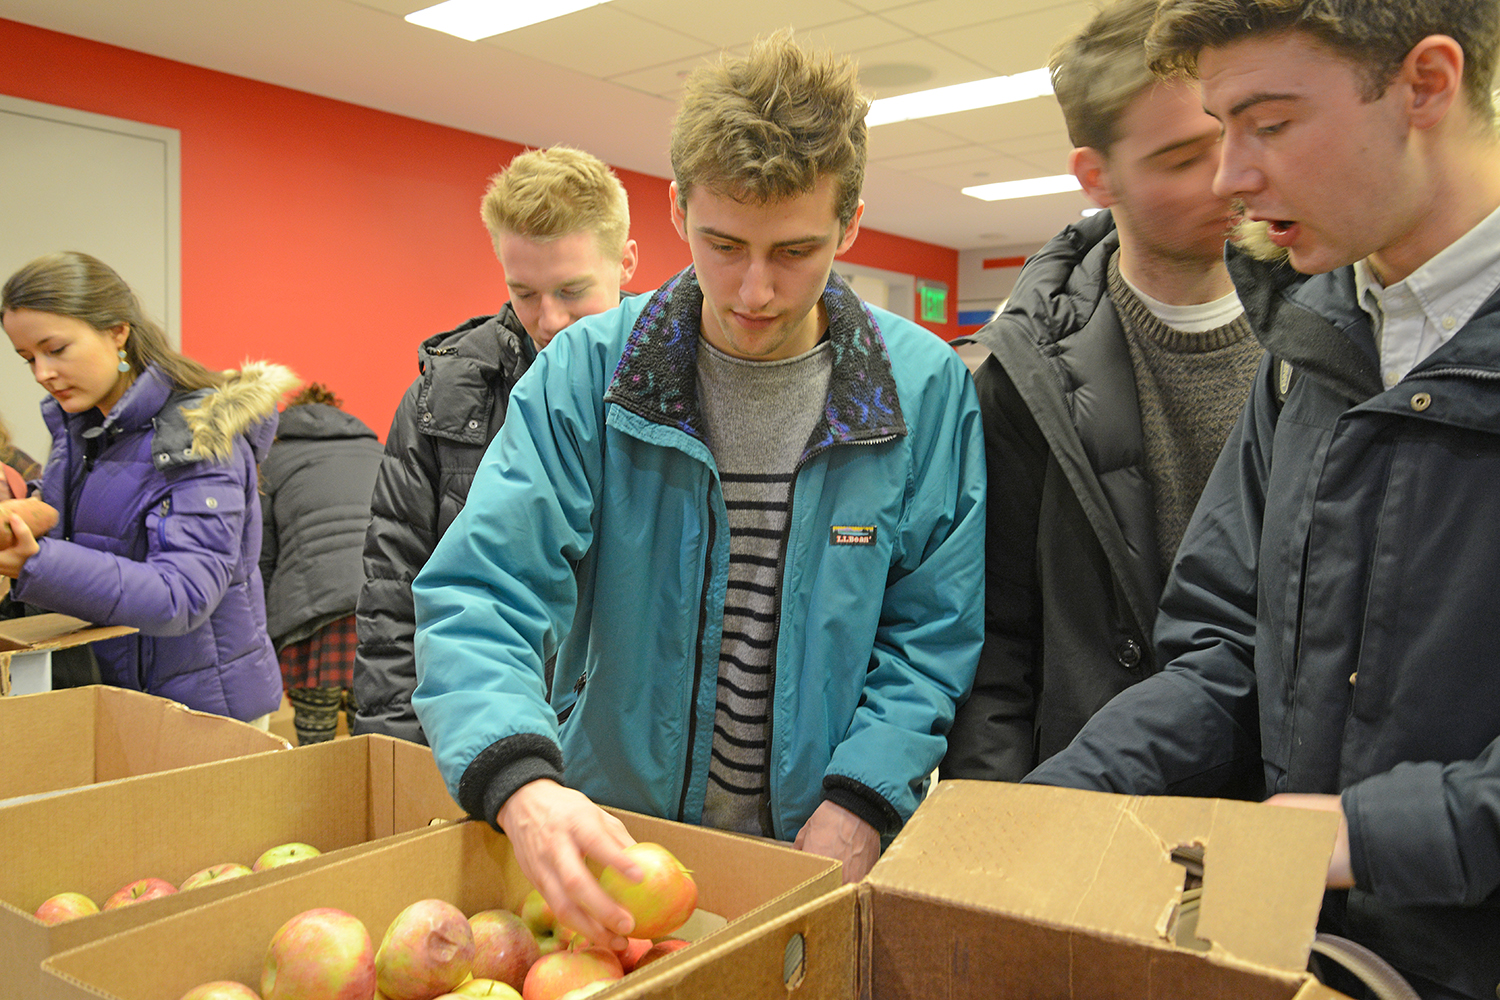 Wesleyan students, staff and faculty may join the Local Food Co-Op. Fresh produce, dairy items, bread and roasted items are delivered to Wesleyan once a week throughout the academic year for pick-up.